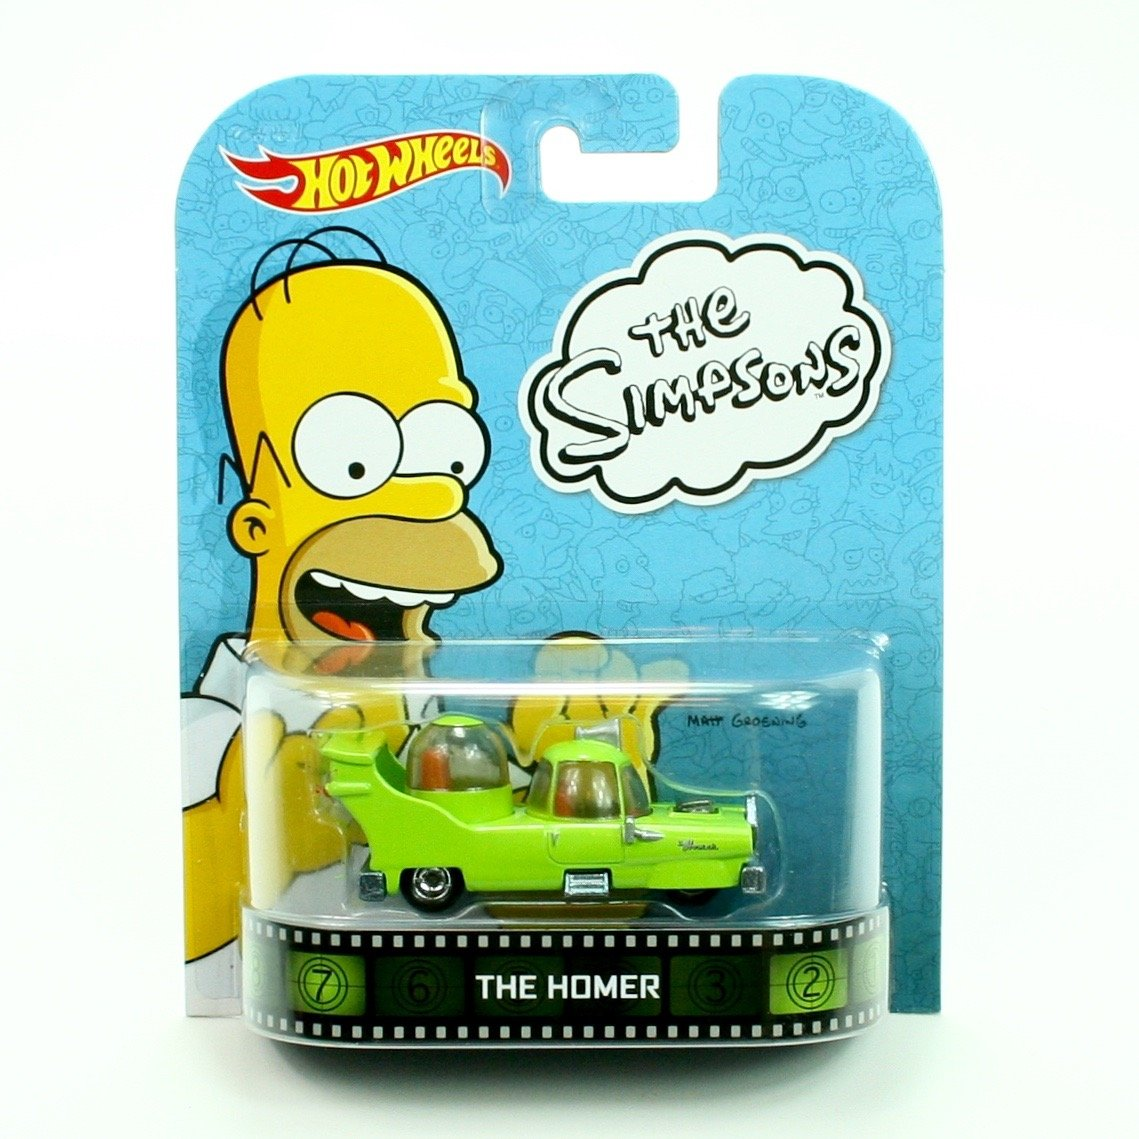 THE HOMER from the classic animated series THE SIMPSONS * Hot Wheels 2013 Retro Series * 1:64 Scale Die Cast Vehicle